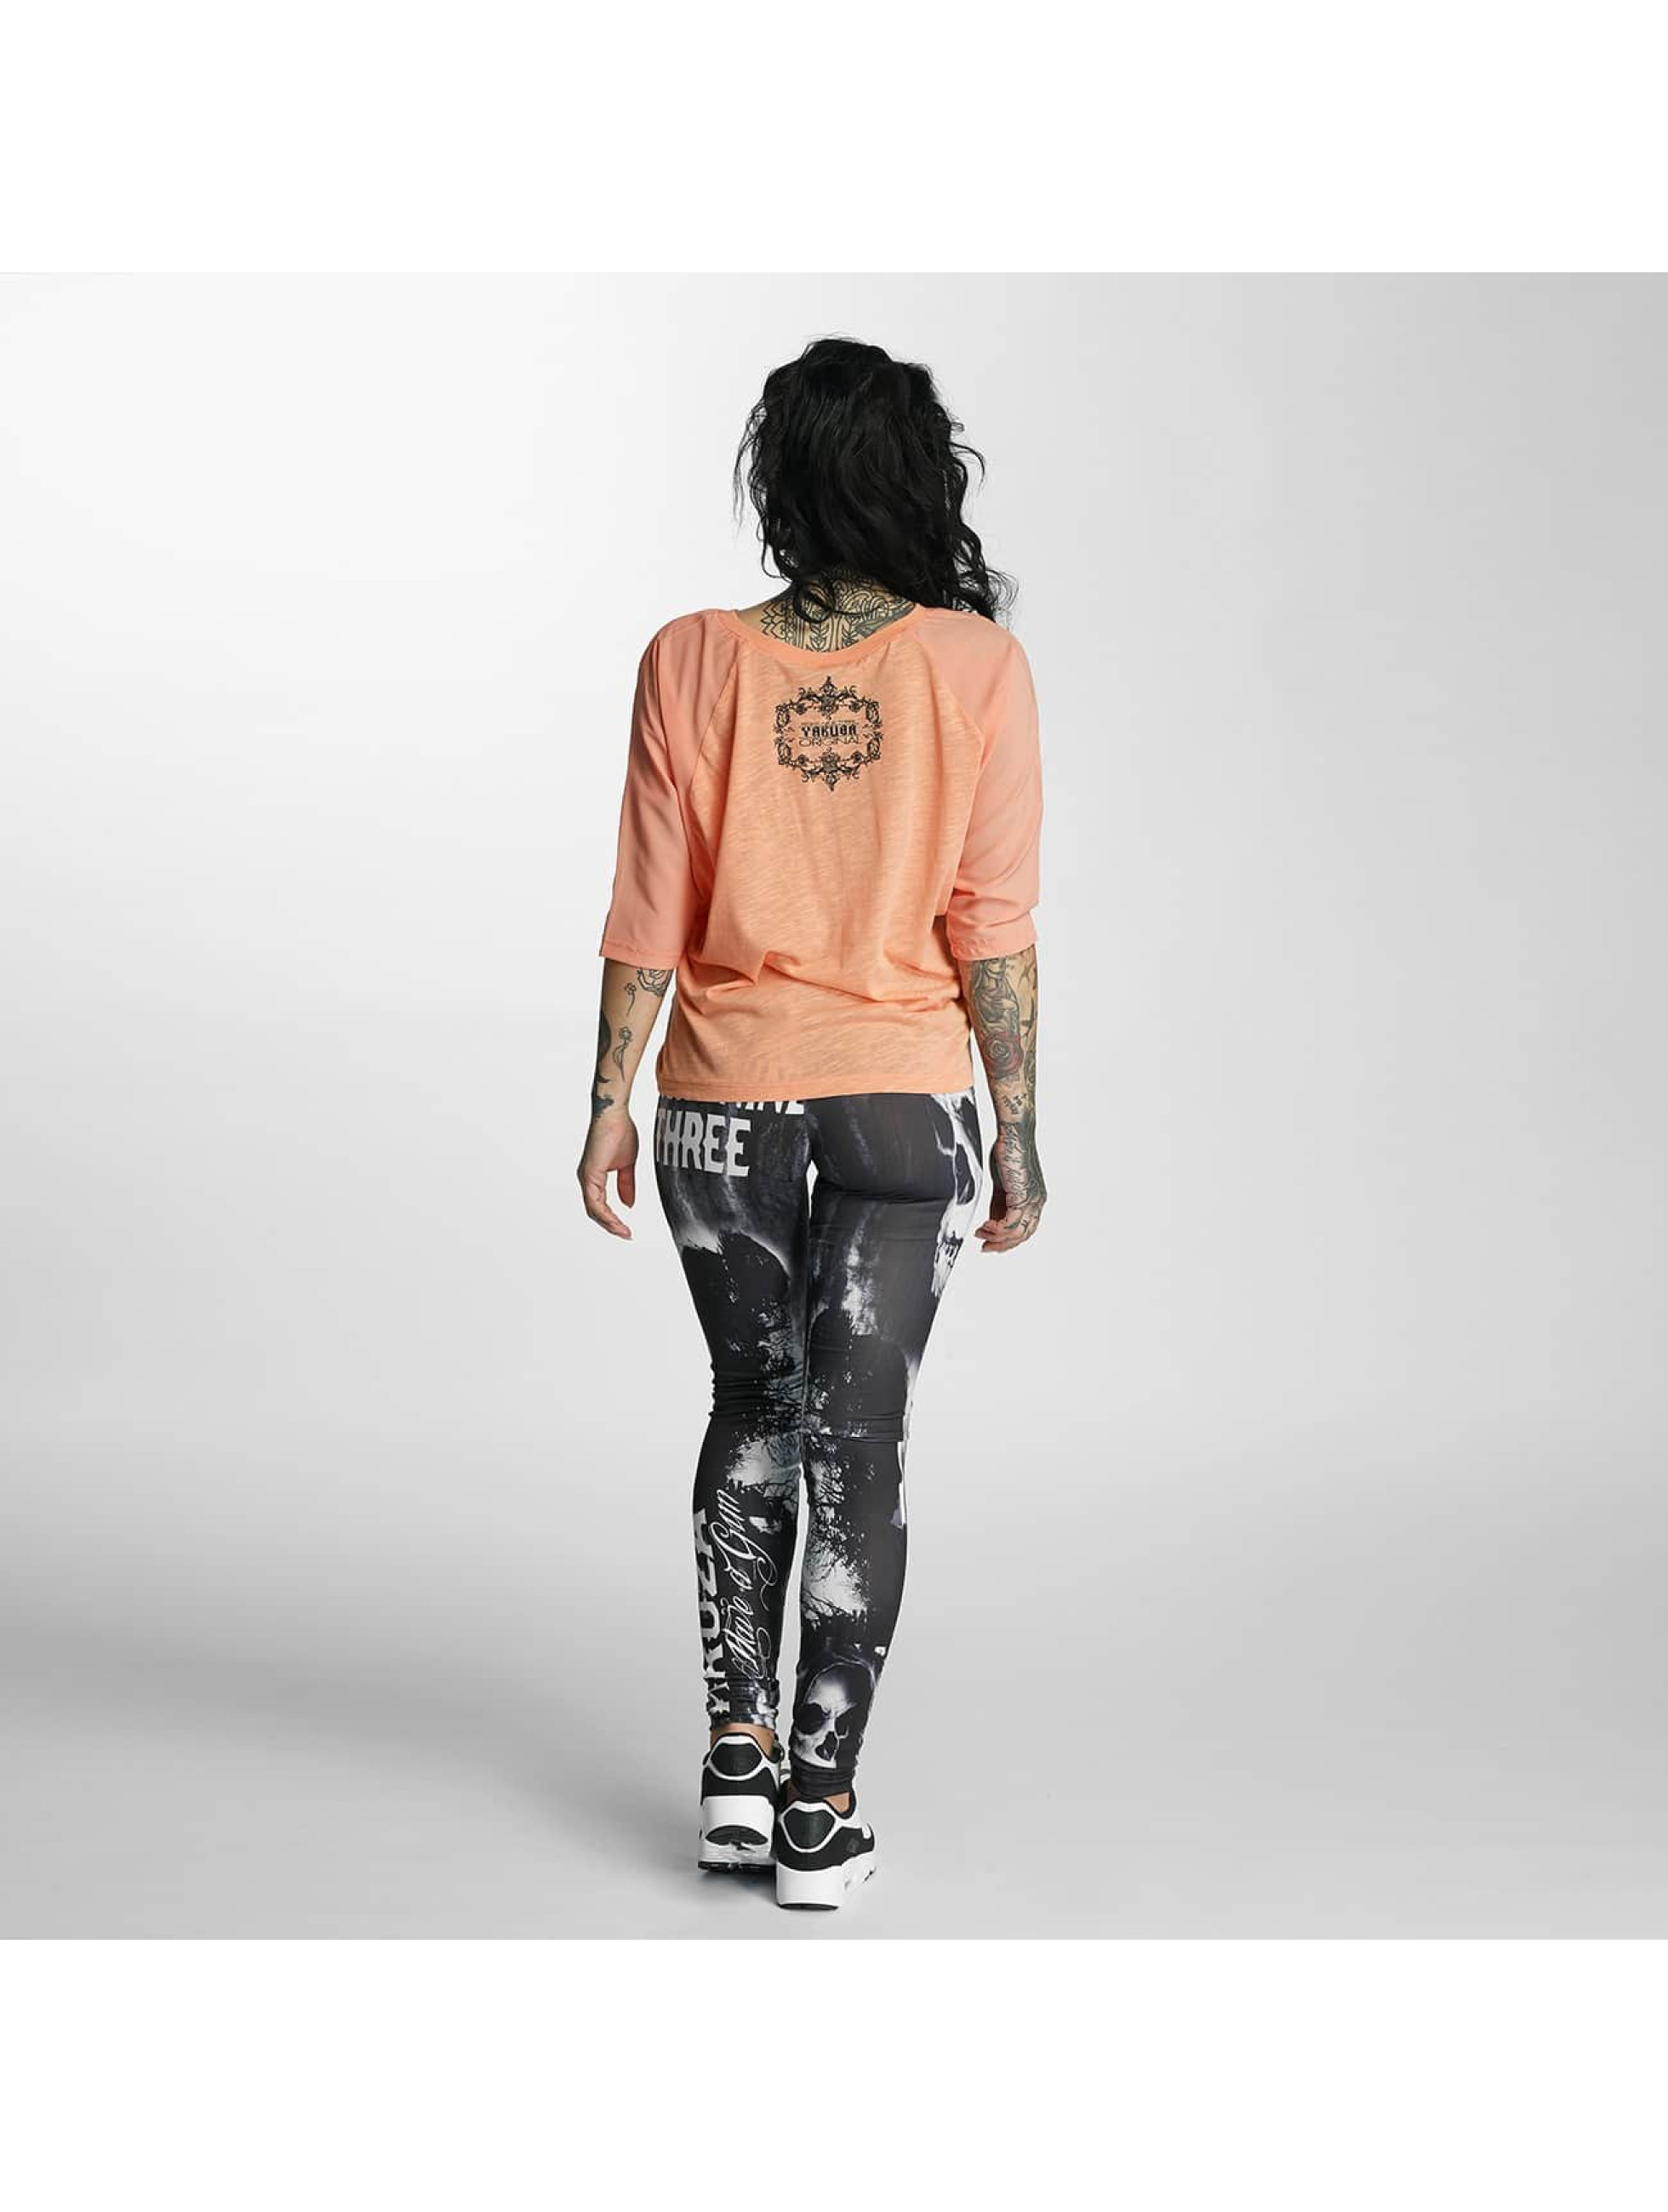 Yakuza Longsleeve Taste and Feel orange